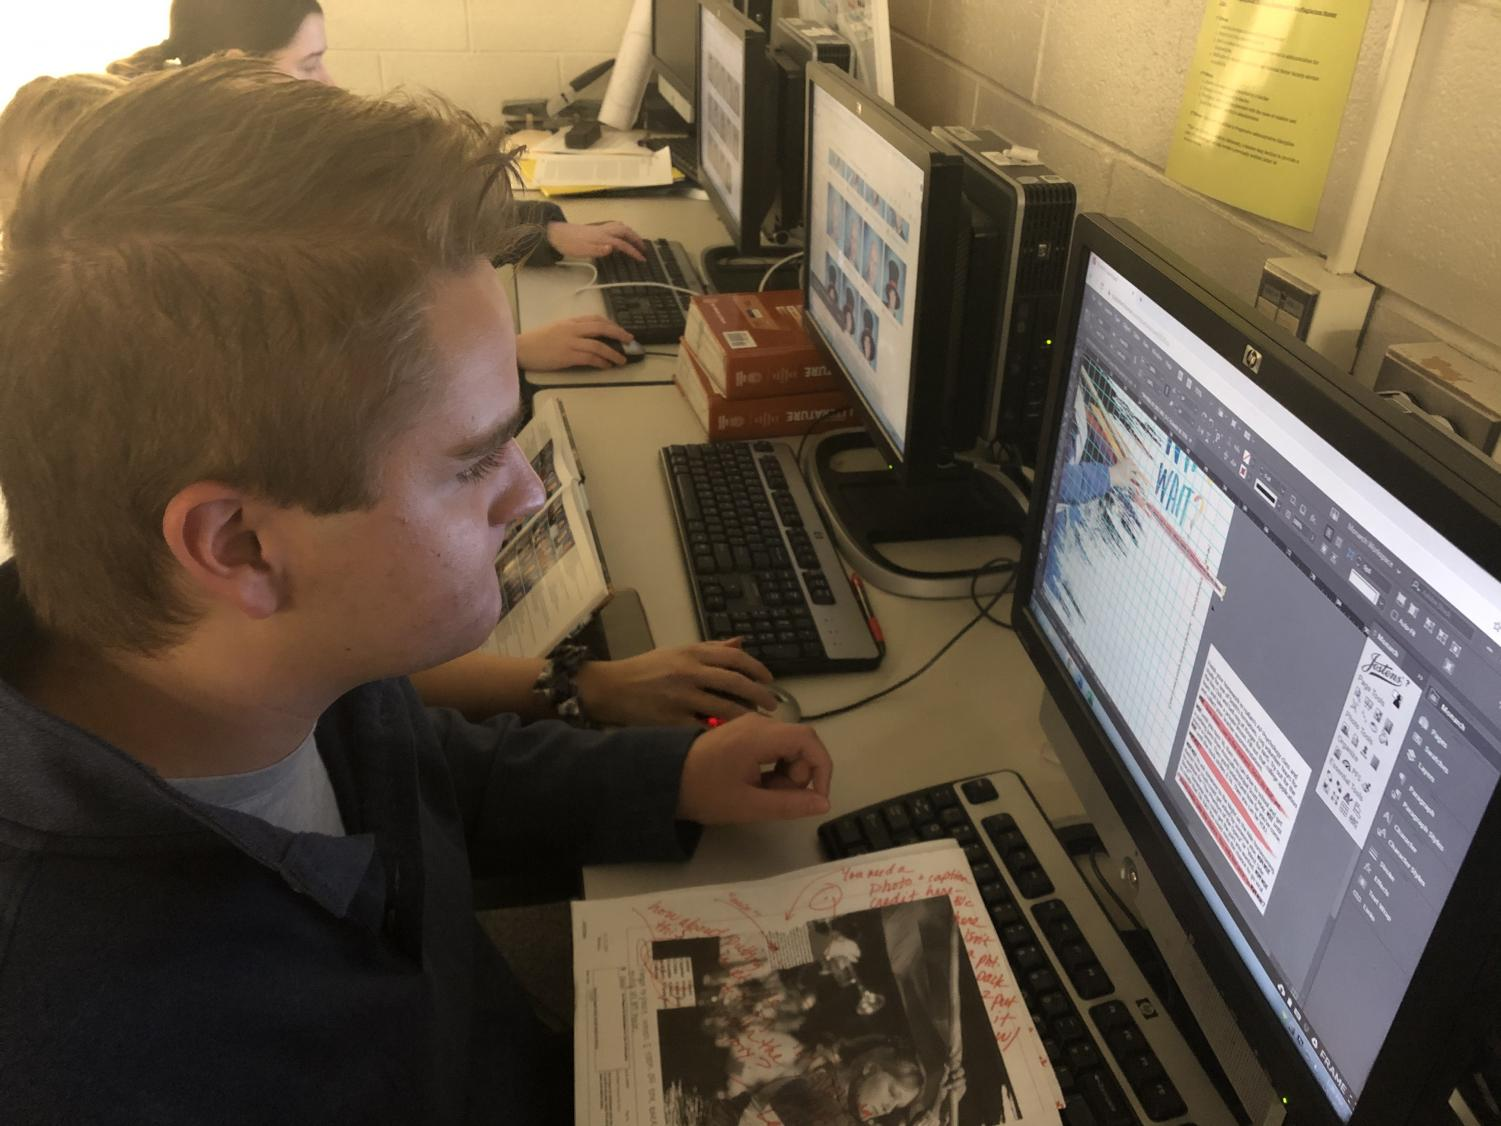 """Engulfed in his work on a spread, senior yearbook Editor-in-Chief Anthony Berkimer continues to engage with his yearbook spread and begins publishing it. """"It meant a lot to me because we put in a lot of work and it was nice to see that it paid off,"""" Berkimer said. The yearbook spread ended up winning second and third place for advertising in Quill and Scroll."""